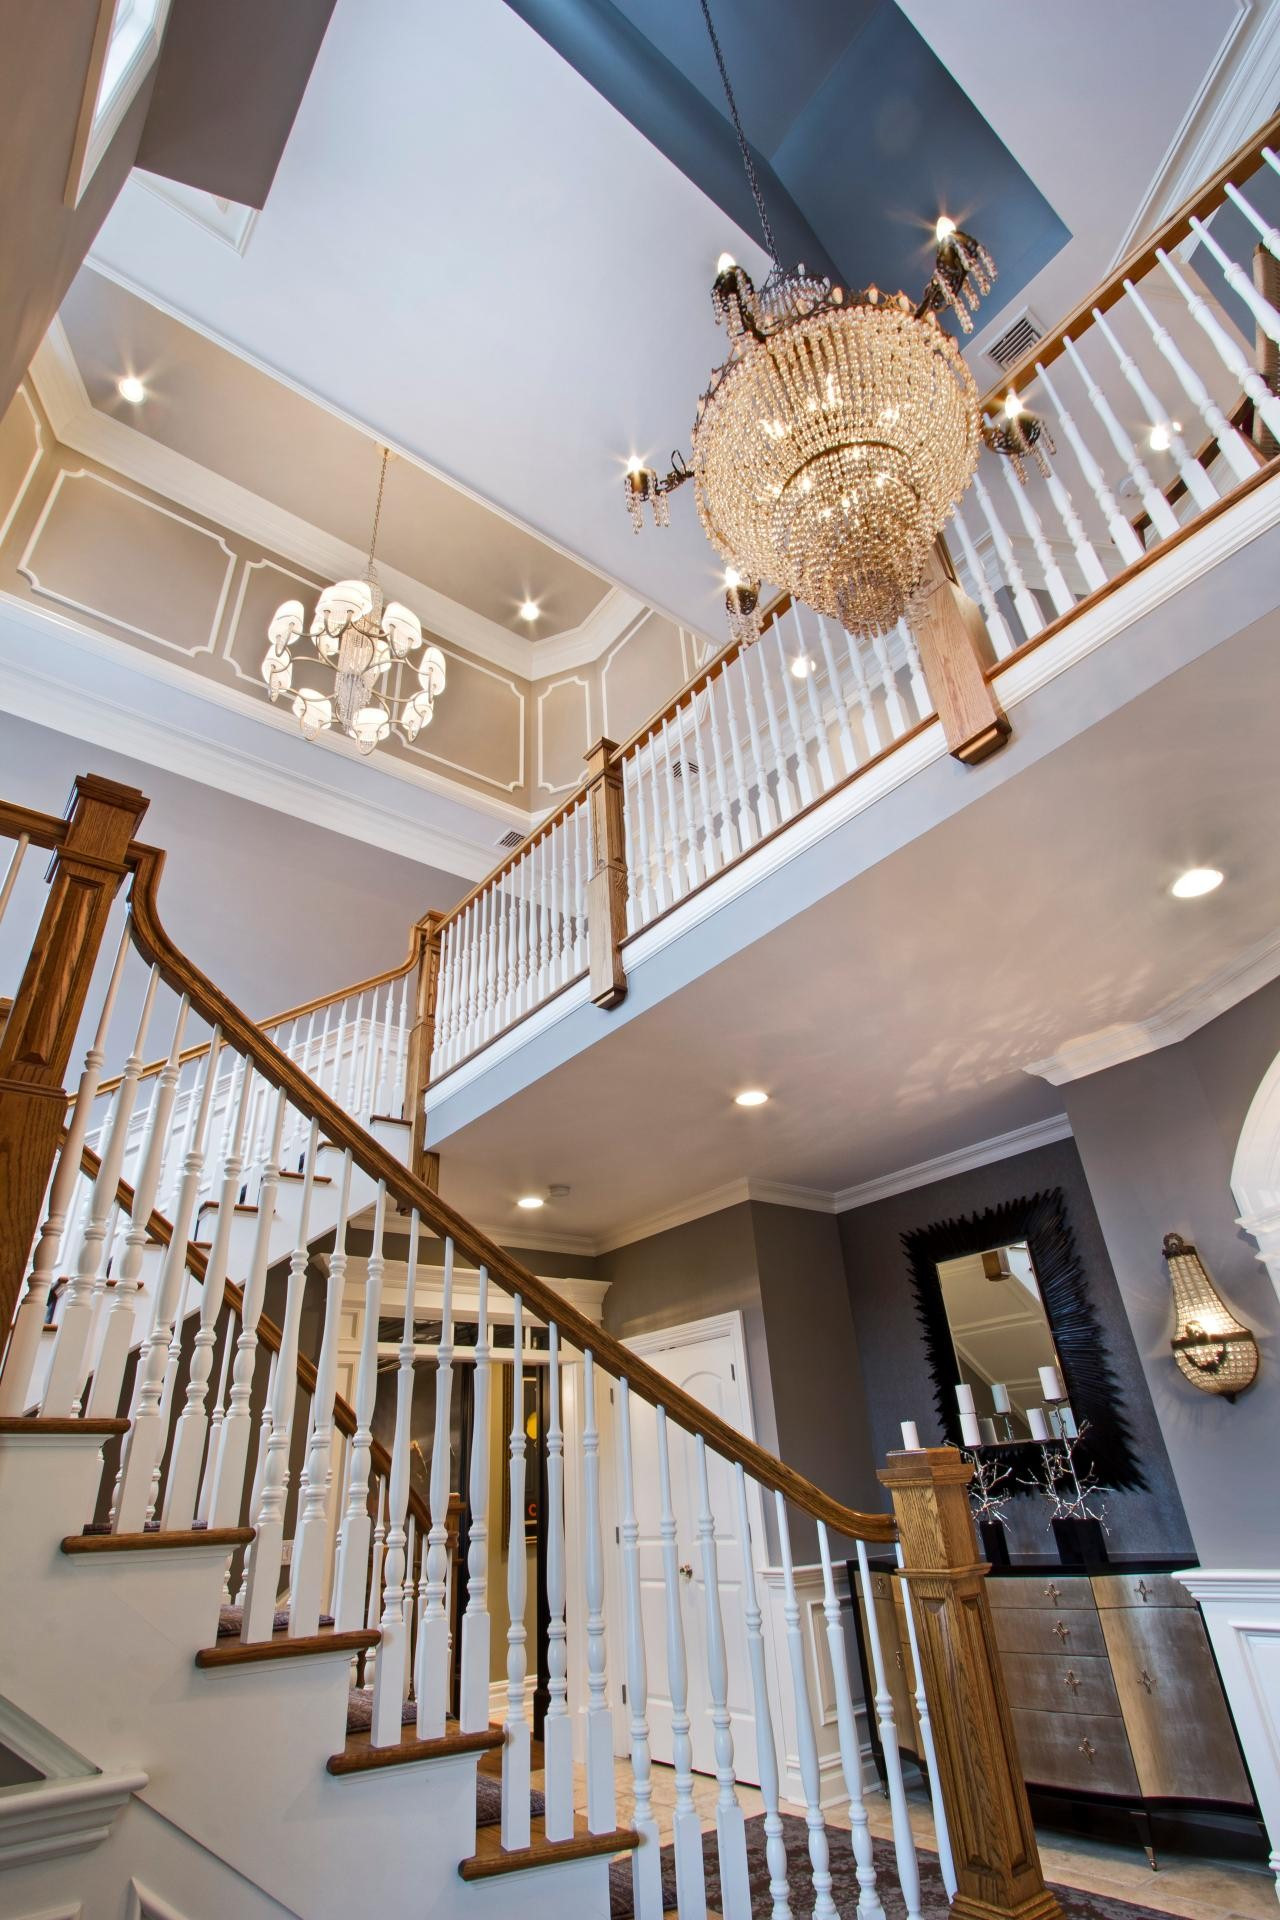 Best ideas about Large Entryway Chandelier . Save or Pin Home Entryway Chandelier — Home Design Romantic Now.